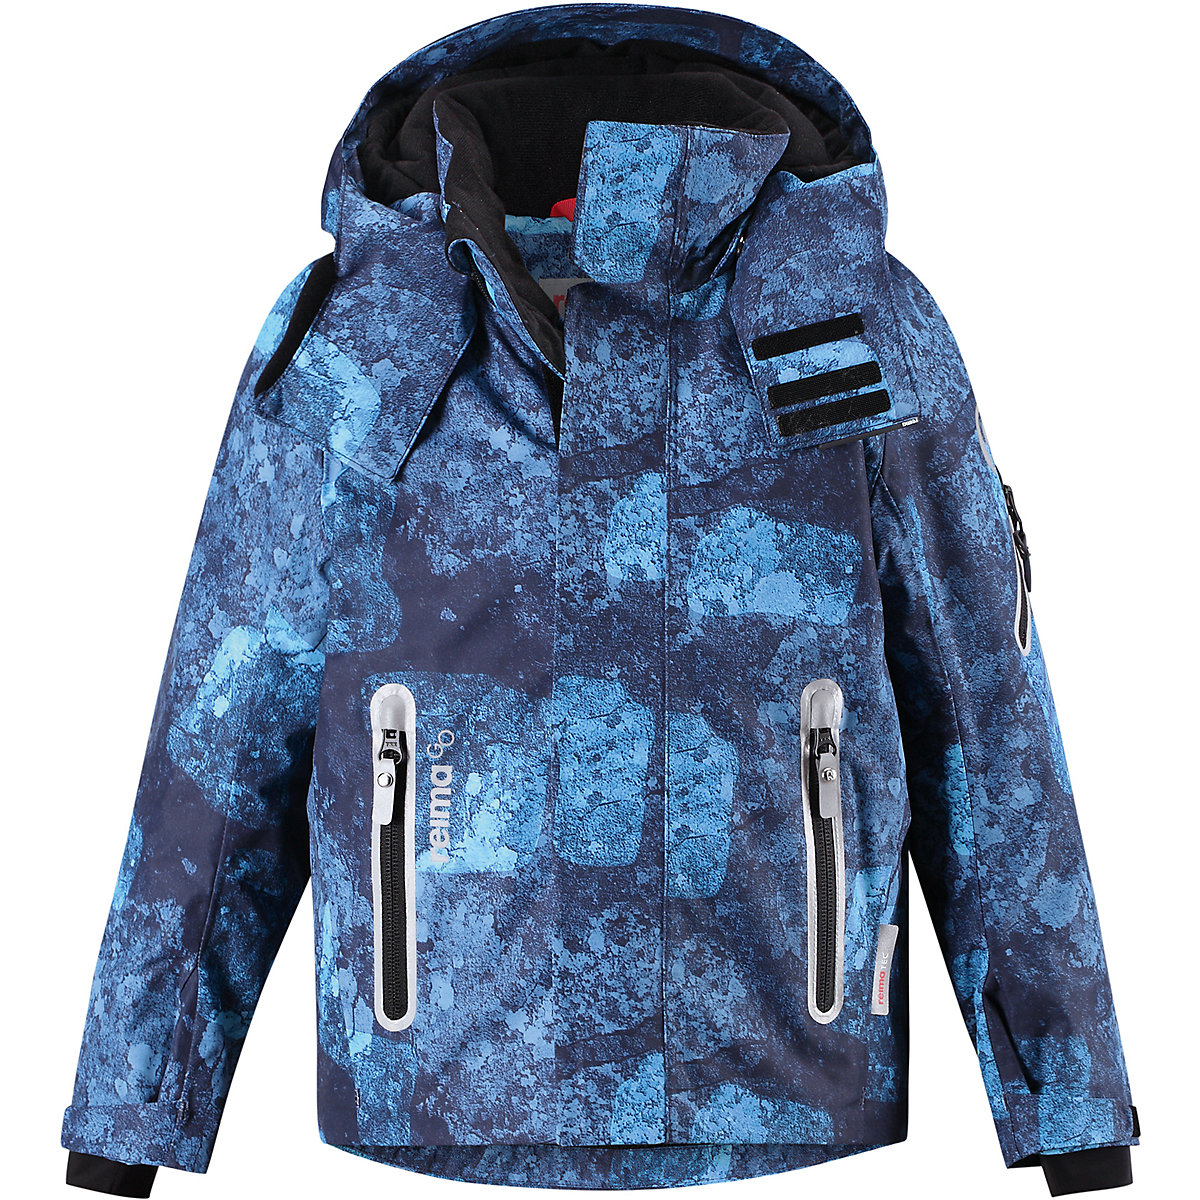 REIMA Jackets 8688892 for boys polyester winter  fur clothes boy brand orangemom winter boys baby clothes 0 24m infant costume for a boy coat jackets soft high quality outerwear